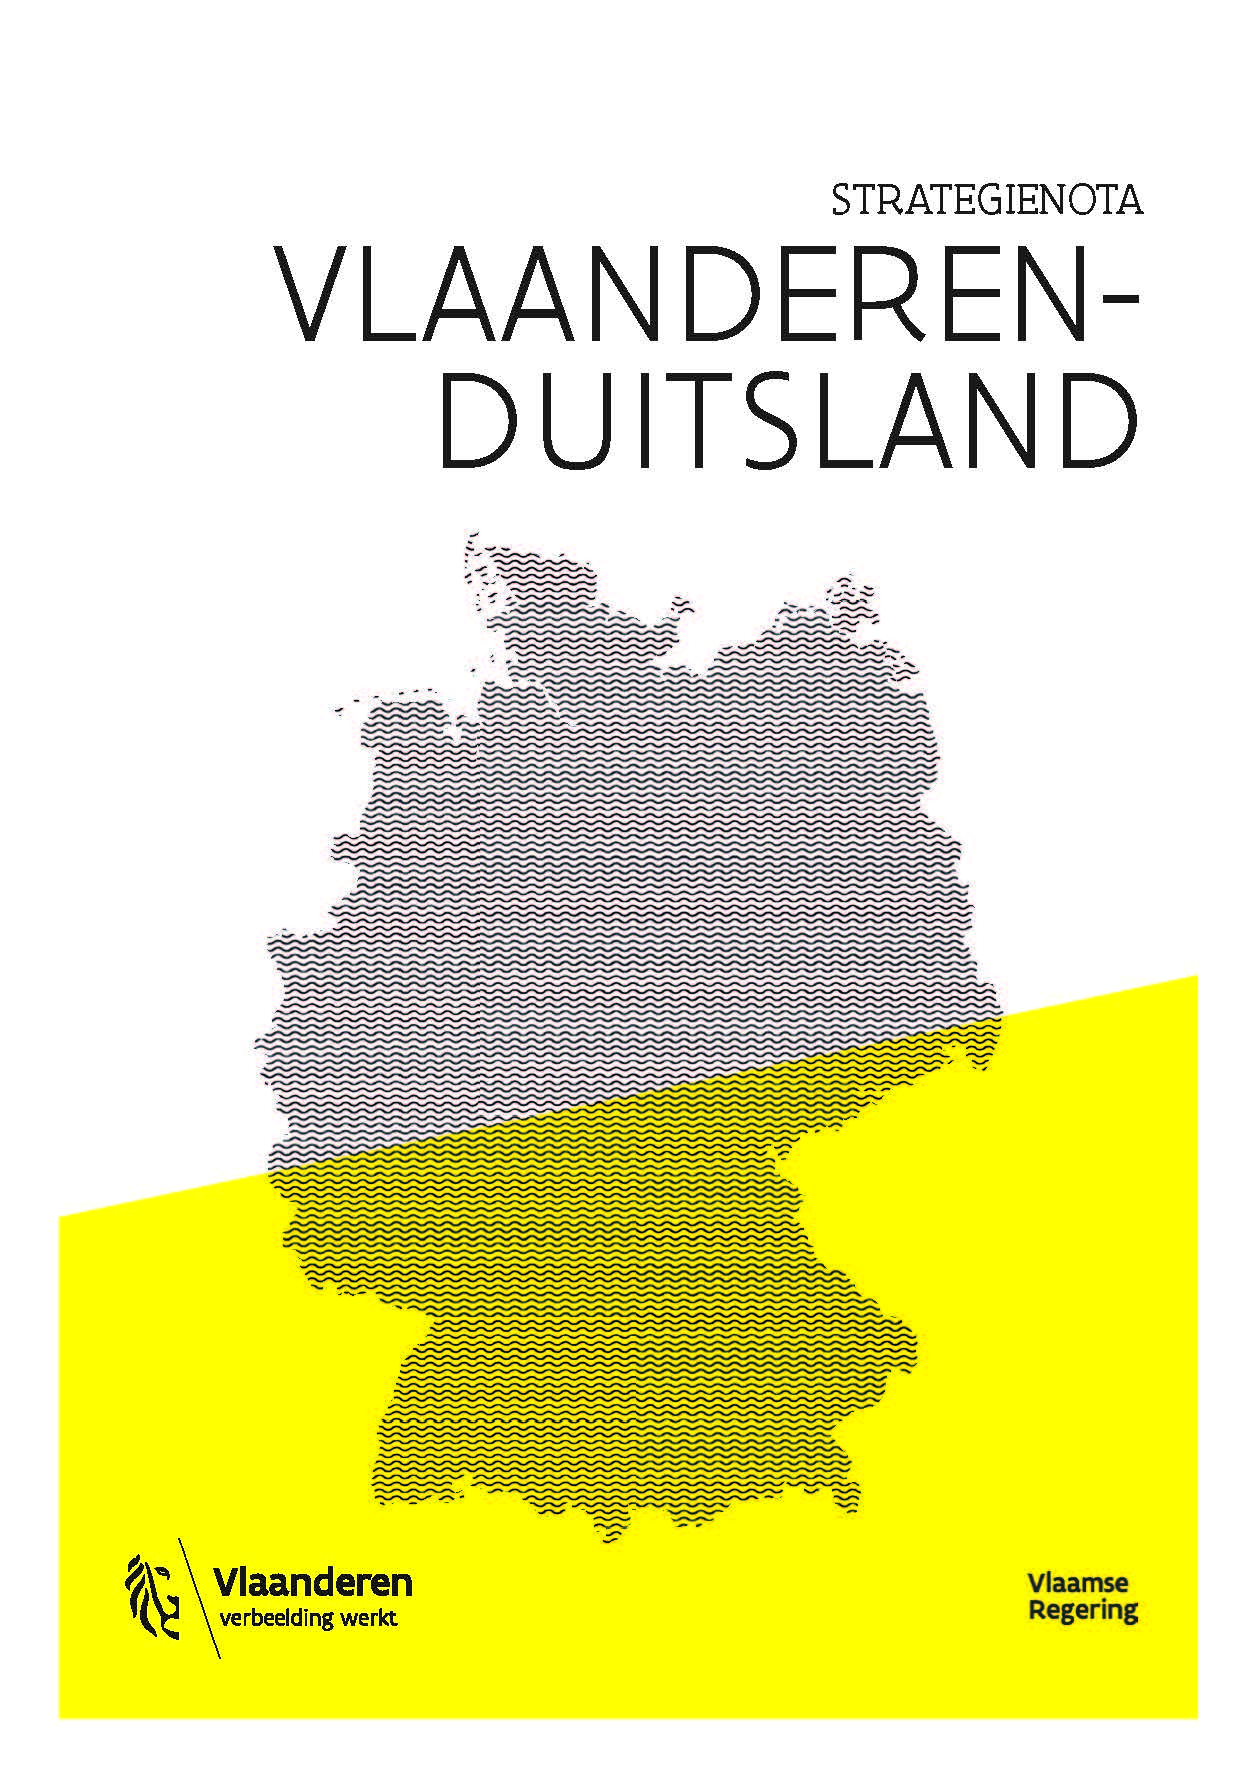 cover strategienota Duitsland NL